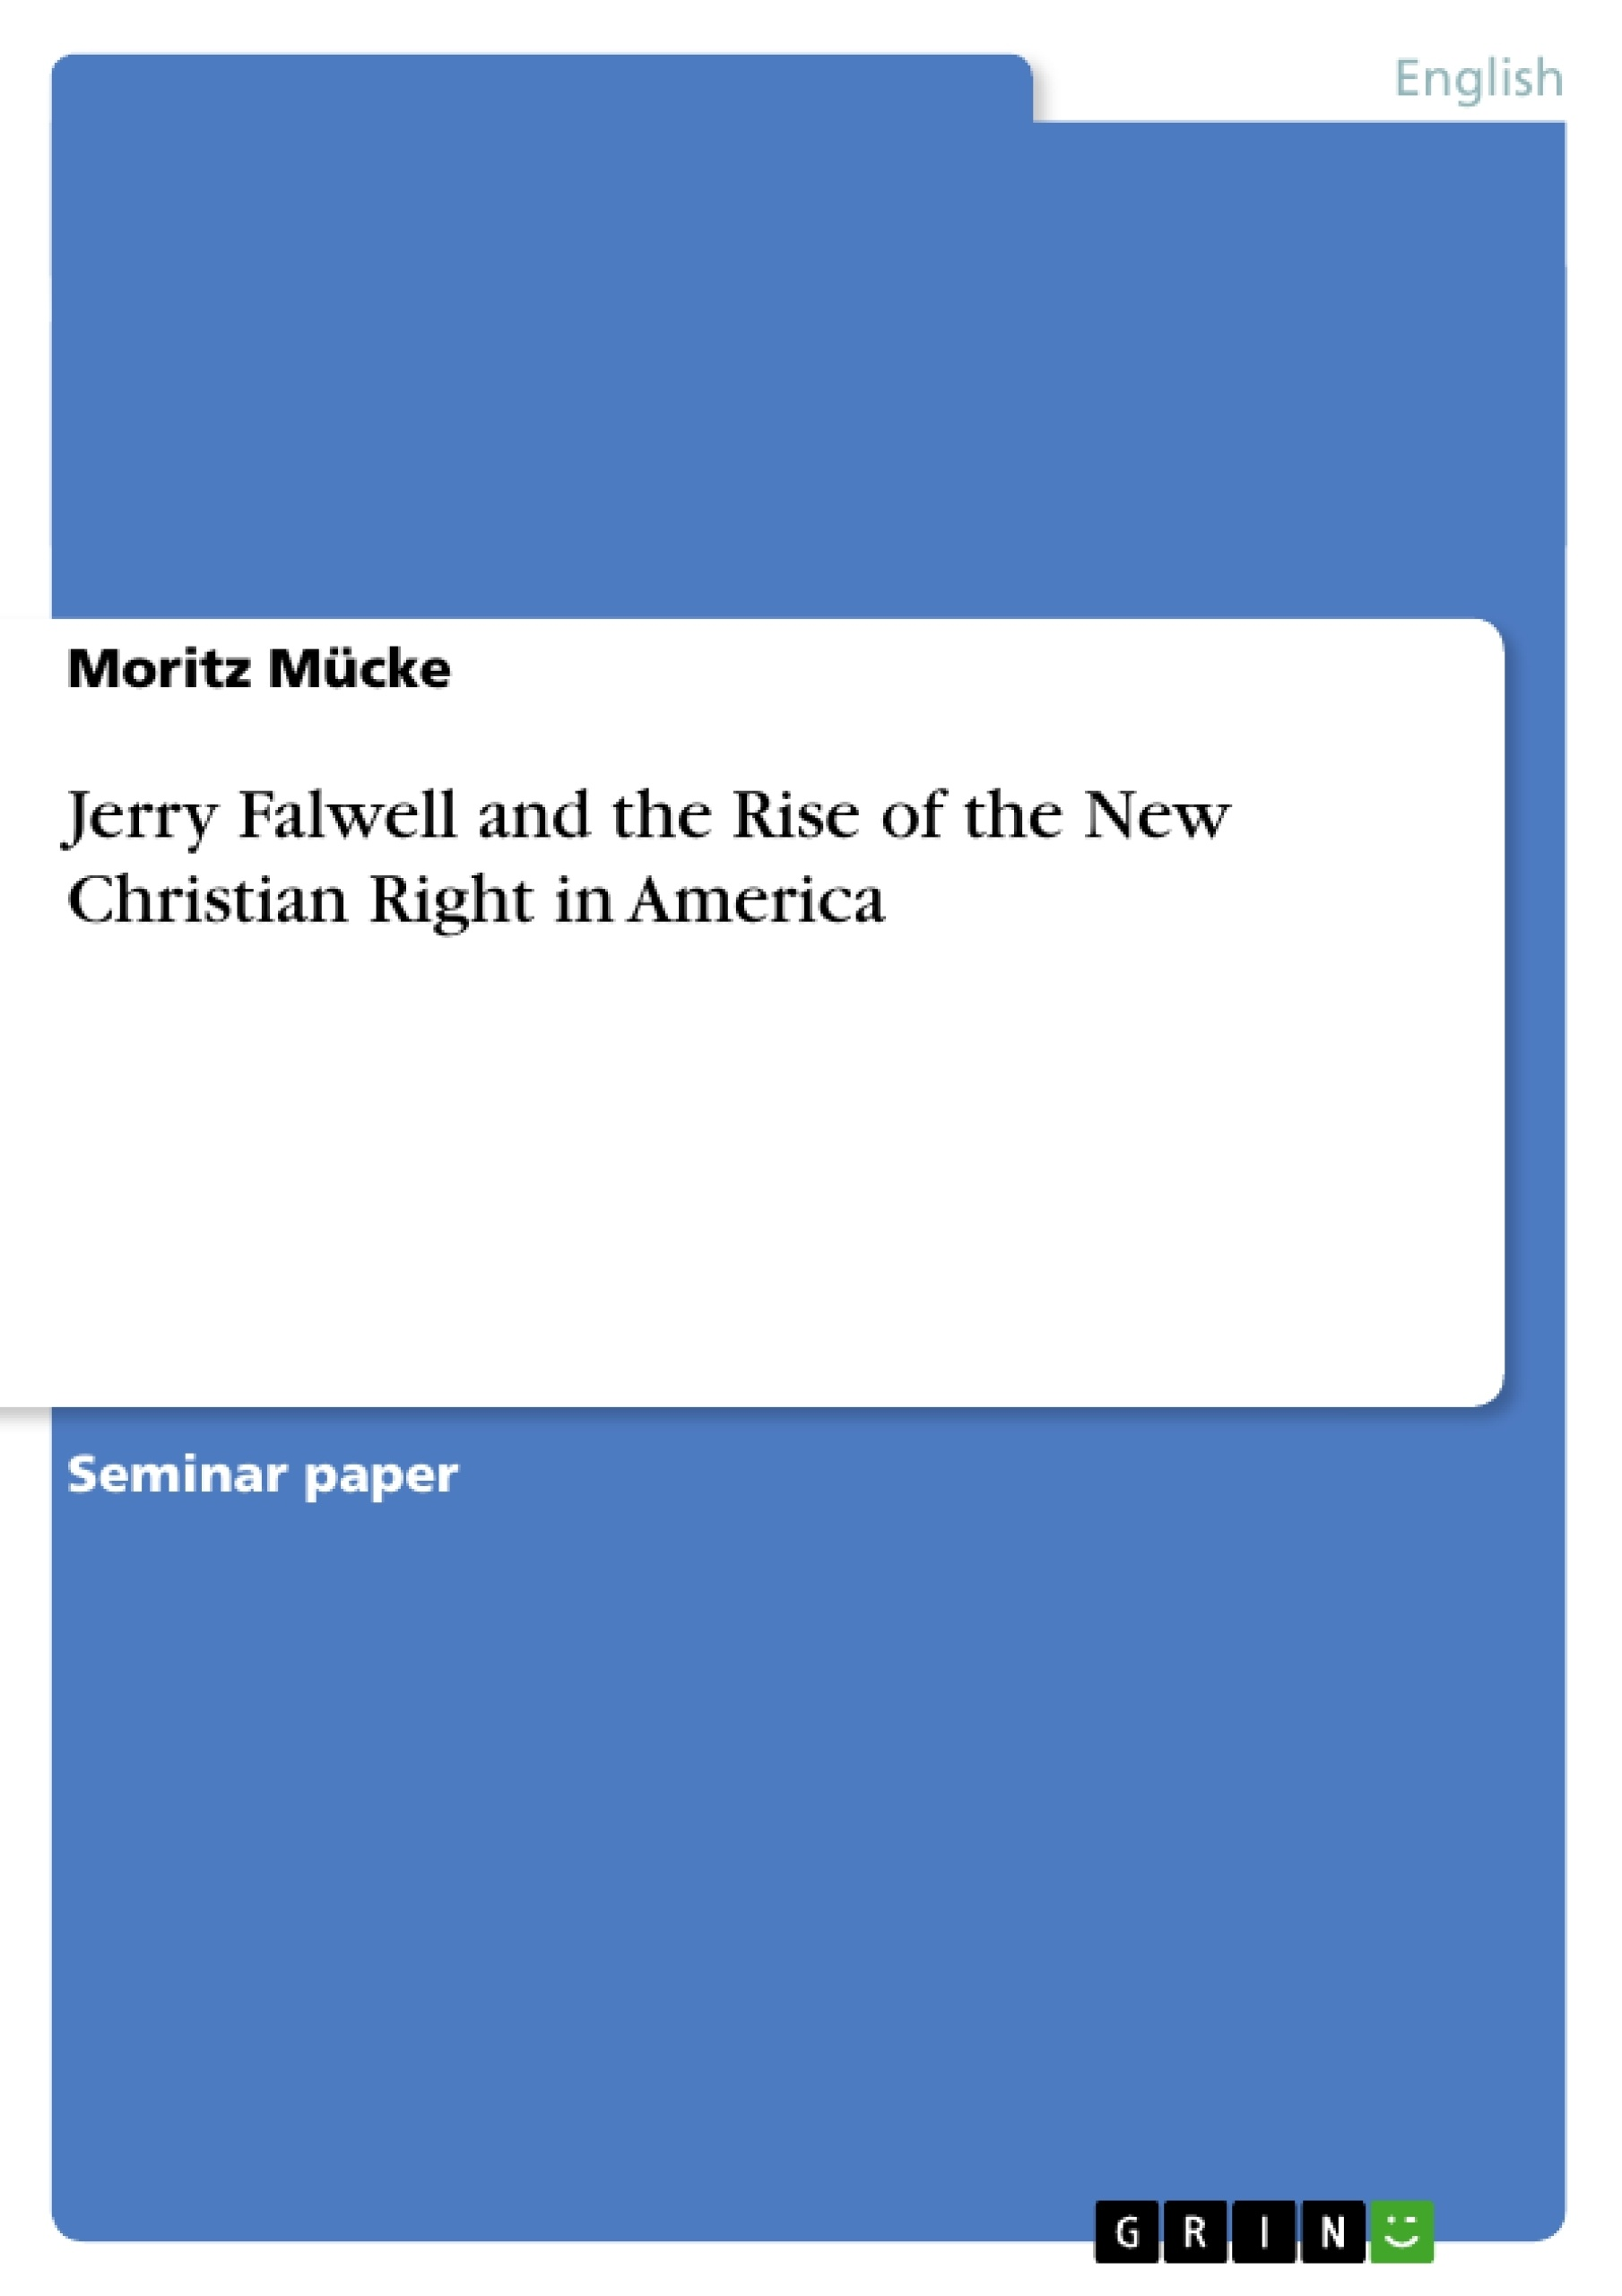 Title: Jerry Falwell and the Rise of the New Christian Right in America